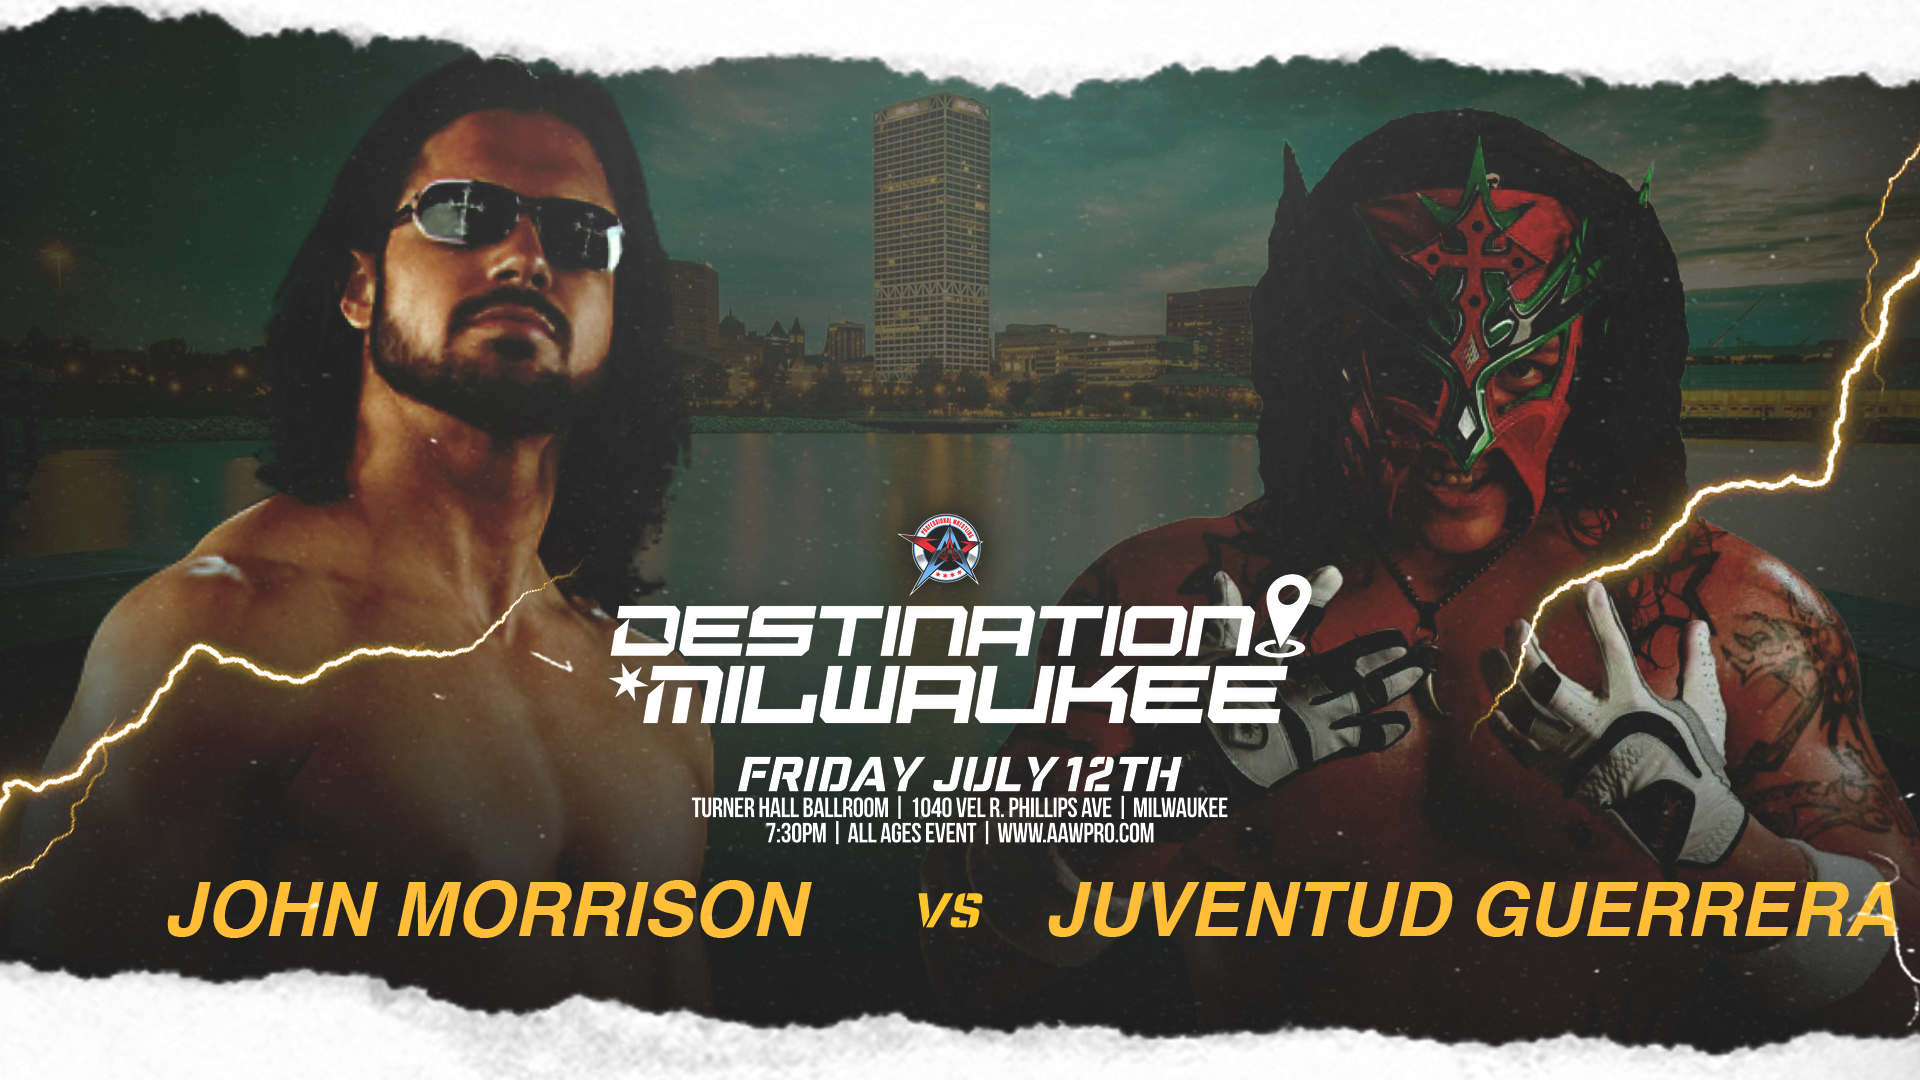 First Match Signed for Destination Milwaukee